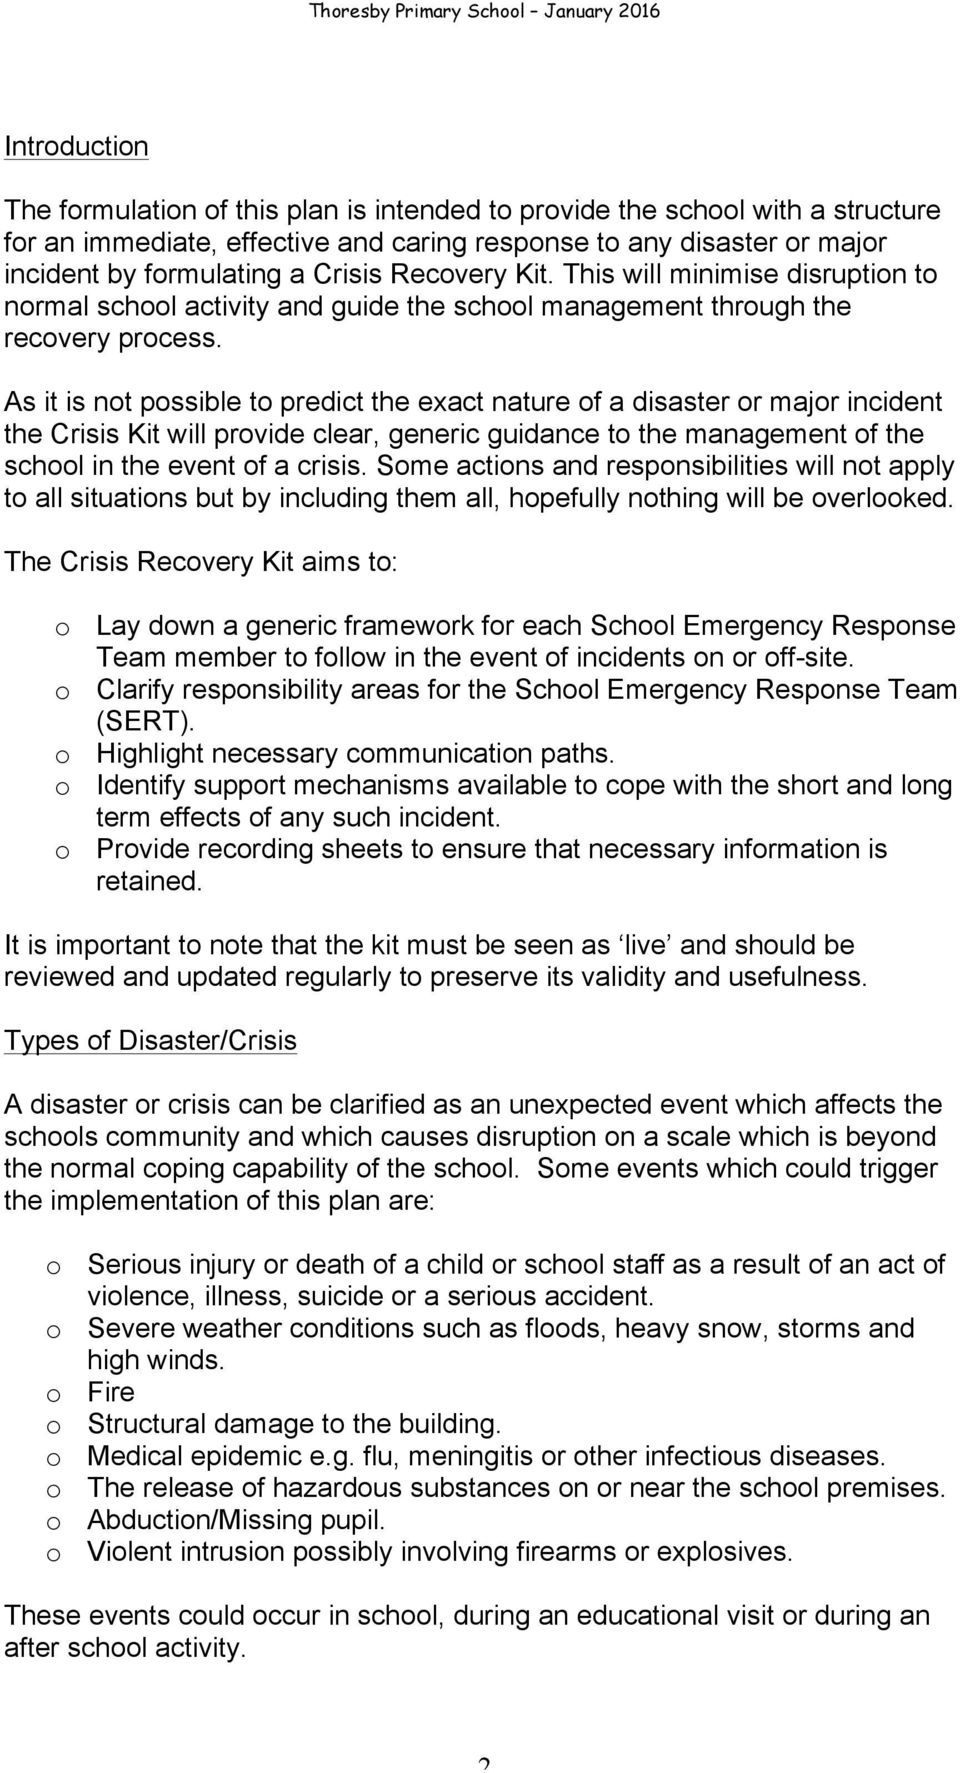 Thoresby Primary School Disaster Recovery Plan - PDF